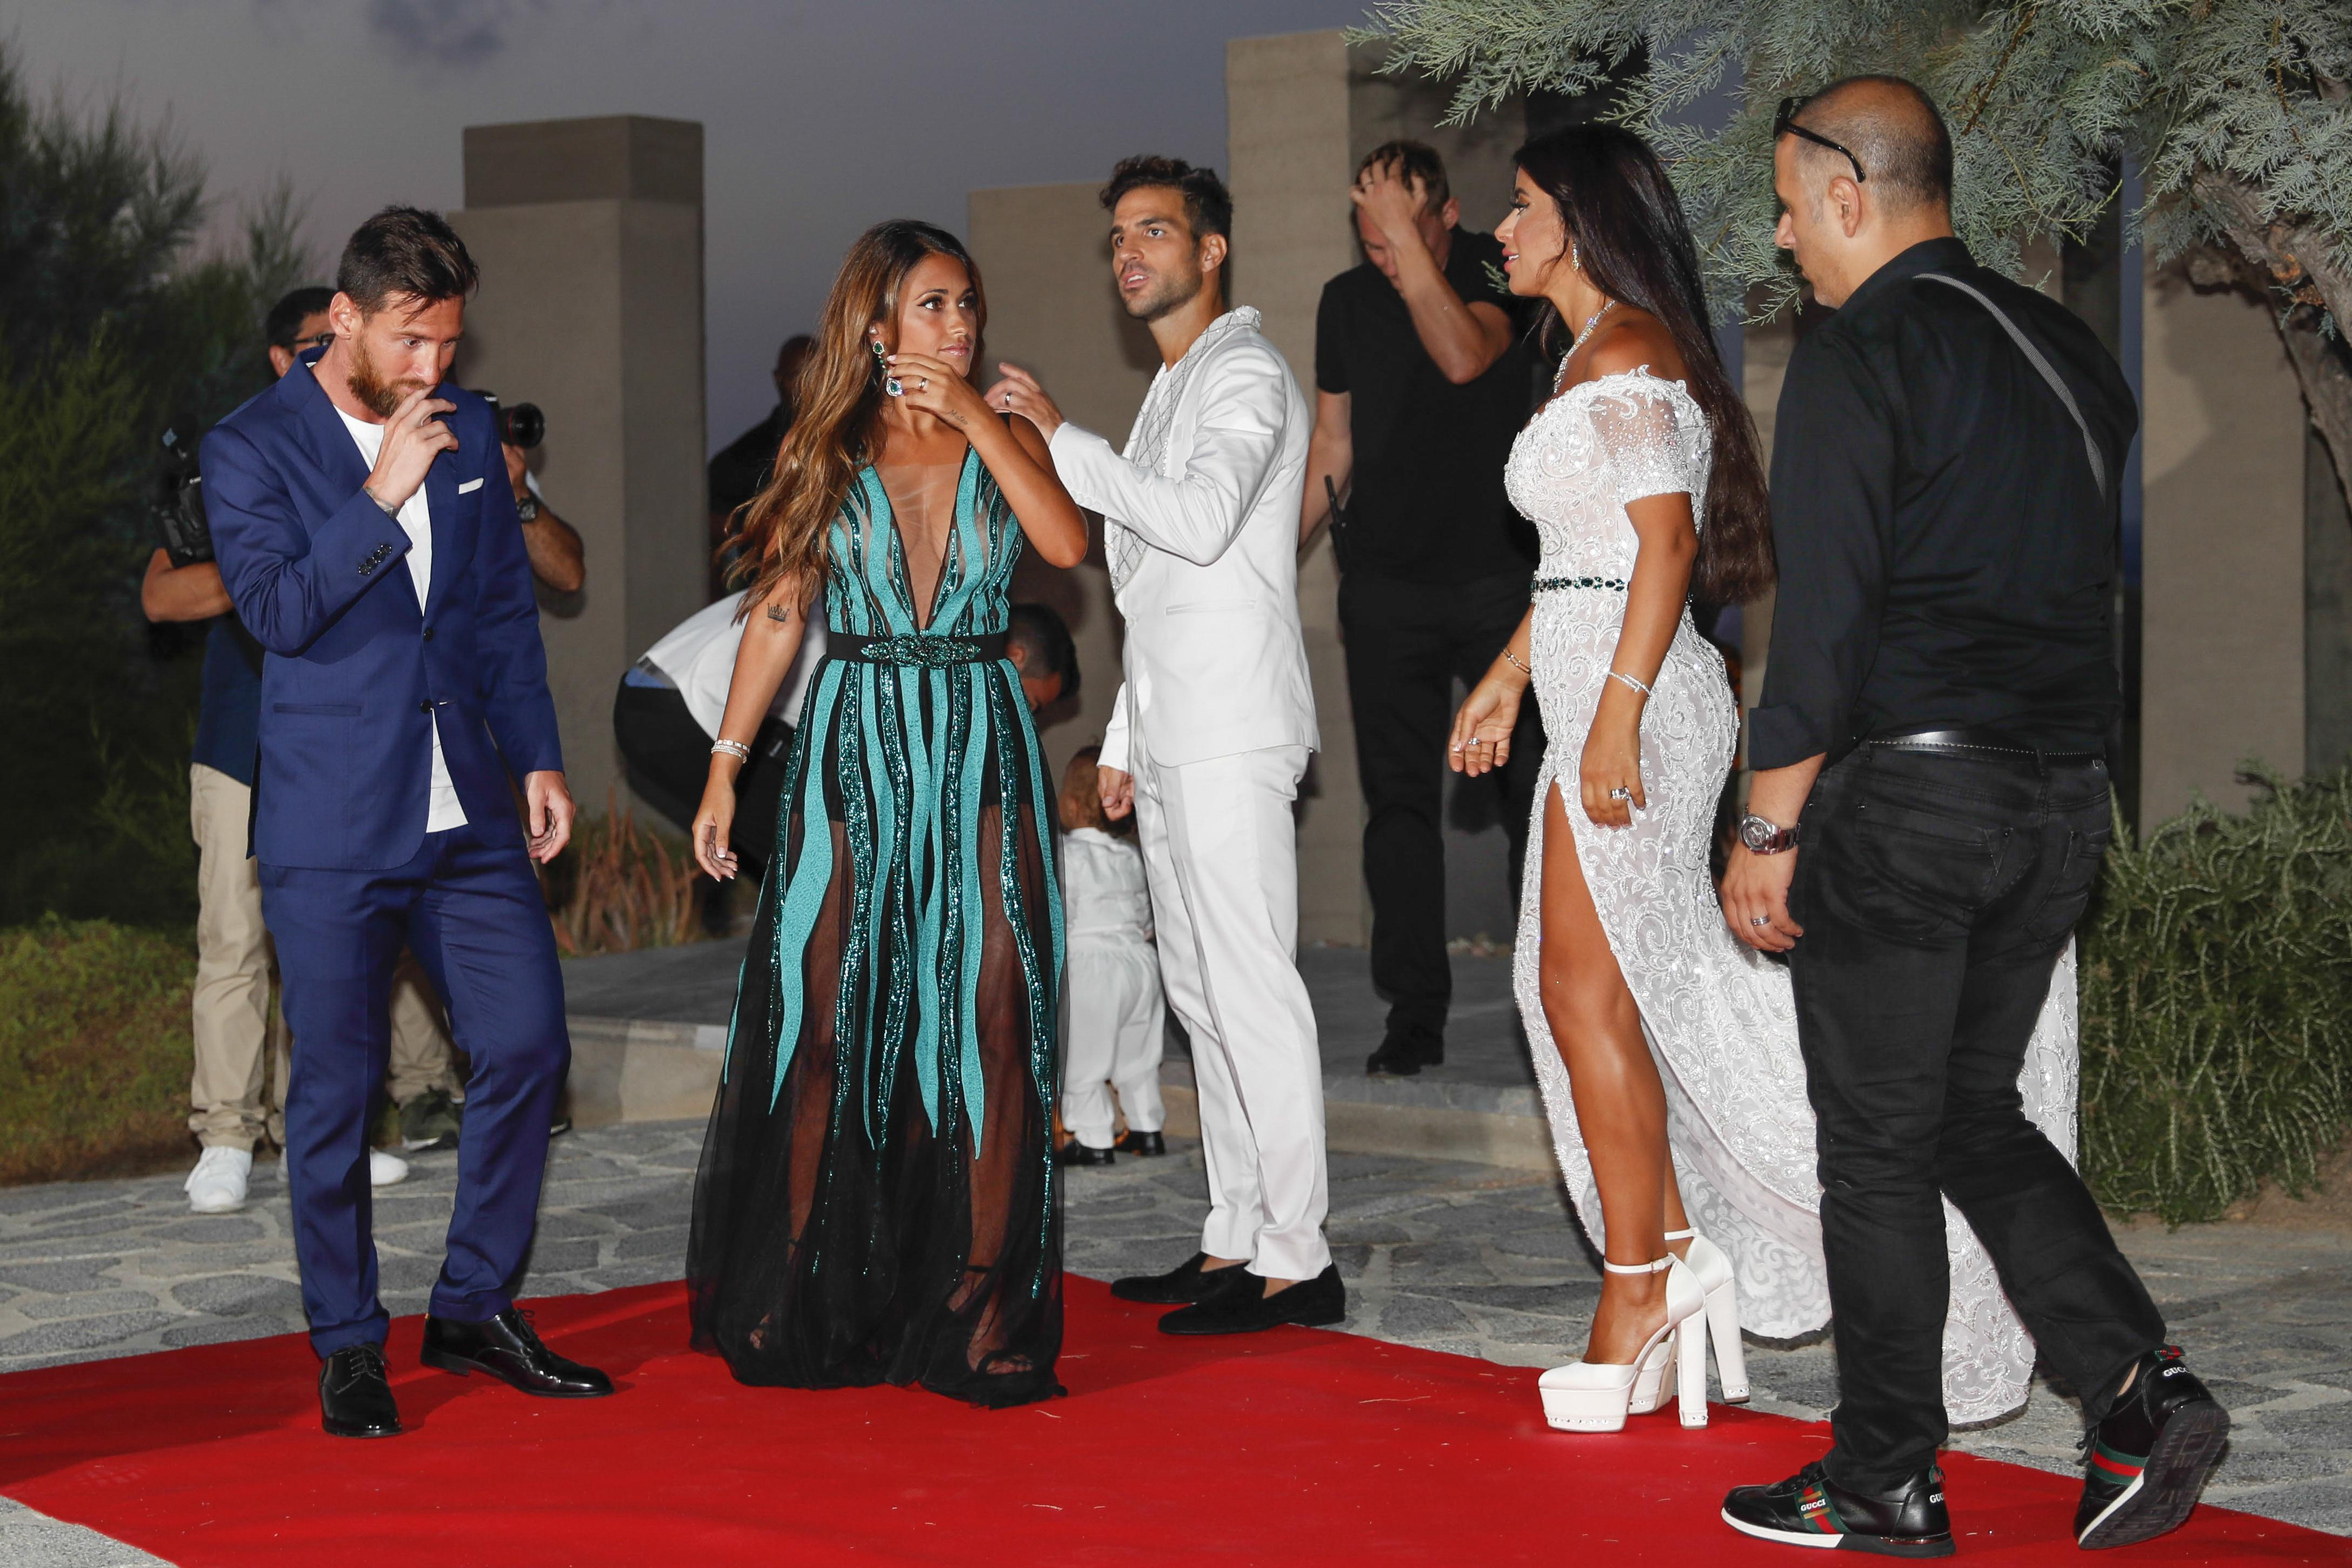 Cesc Fabregas and wife Daniella Semaan are good friends with Lionel Messi and Antonella Roccuzzo having been on holiday together before